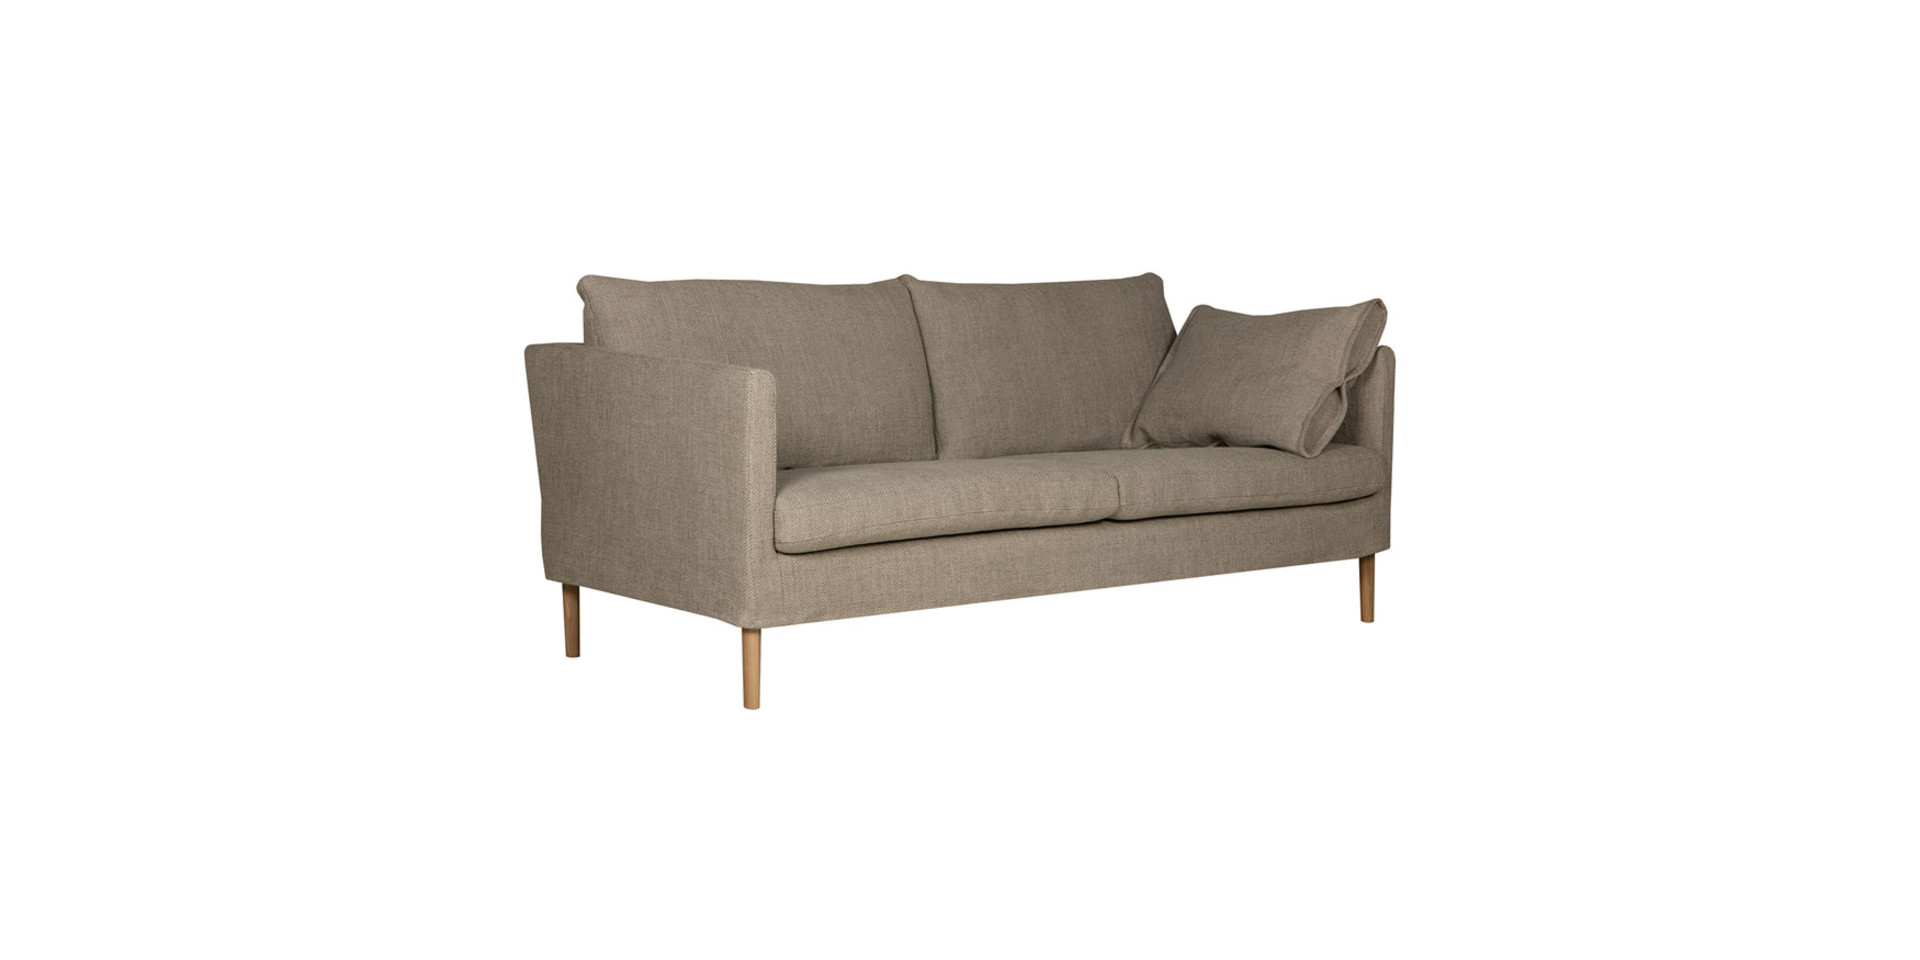 sits-lena-canape-ver.A_2seater_linenL616_0003_sand_2